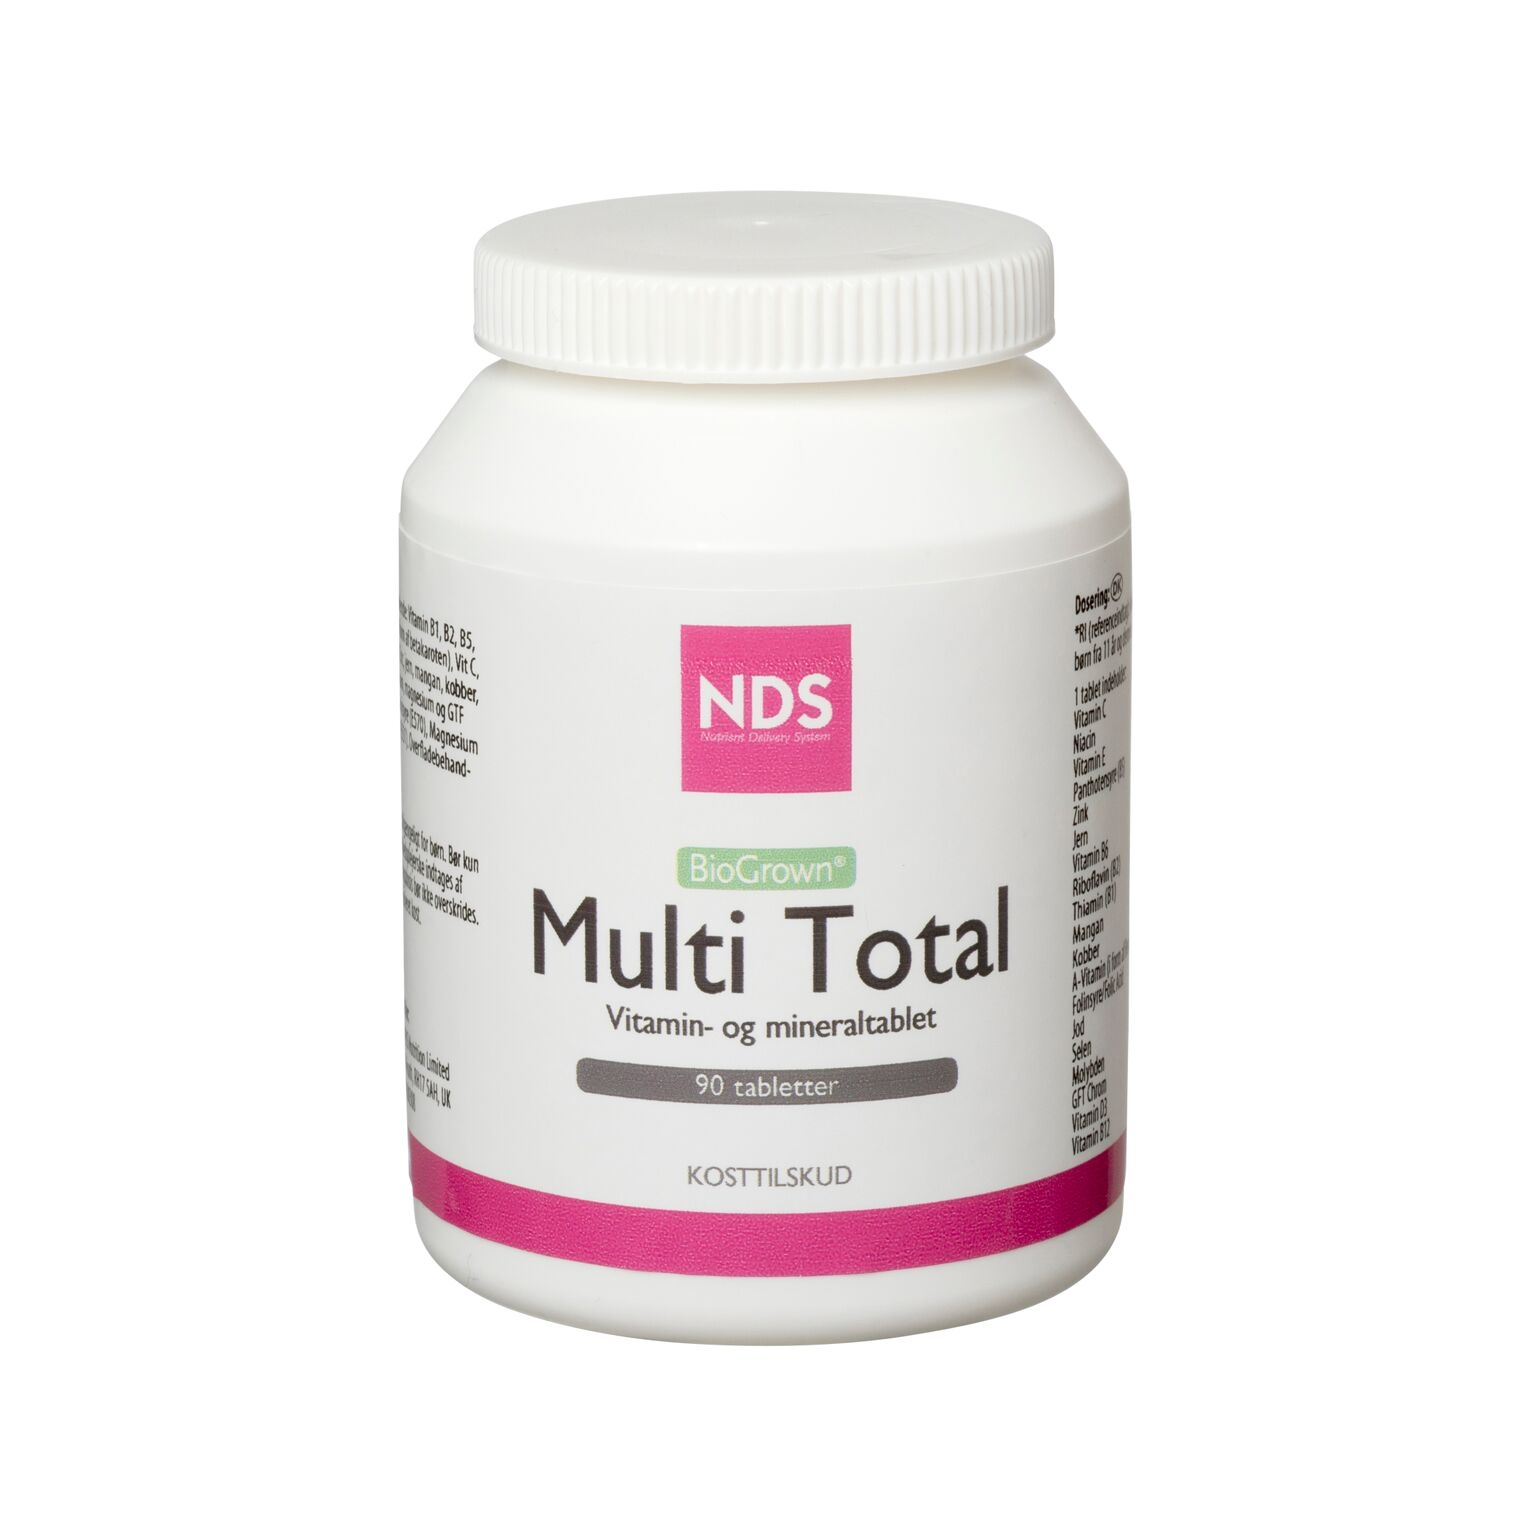 NDS Multi Total - 90 tabletter